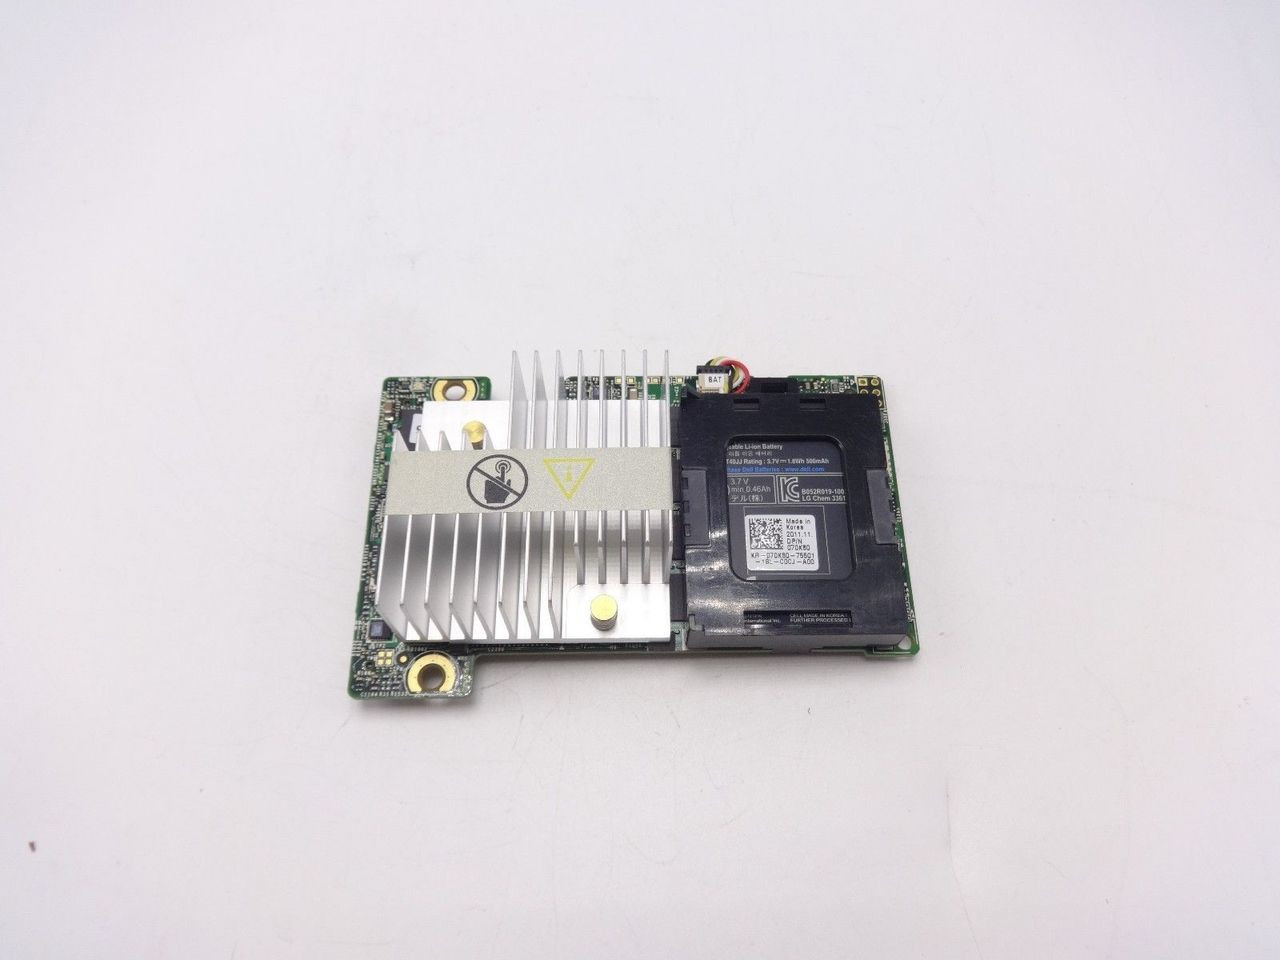 Miscellaneous/Dell Raid Controllers/PERC Cards for Poweredge 12th Generation Servers;Parts/Parts Search By Model/Dell Server Parts/Dell Poweredge R720;Parts/Parts Search By Model/Dell Server Parts/Dell Poweredge R620;Parts/Parts Search By Model/Dell